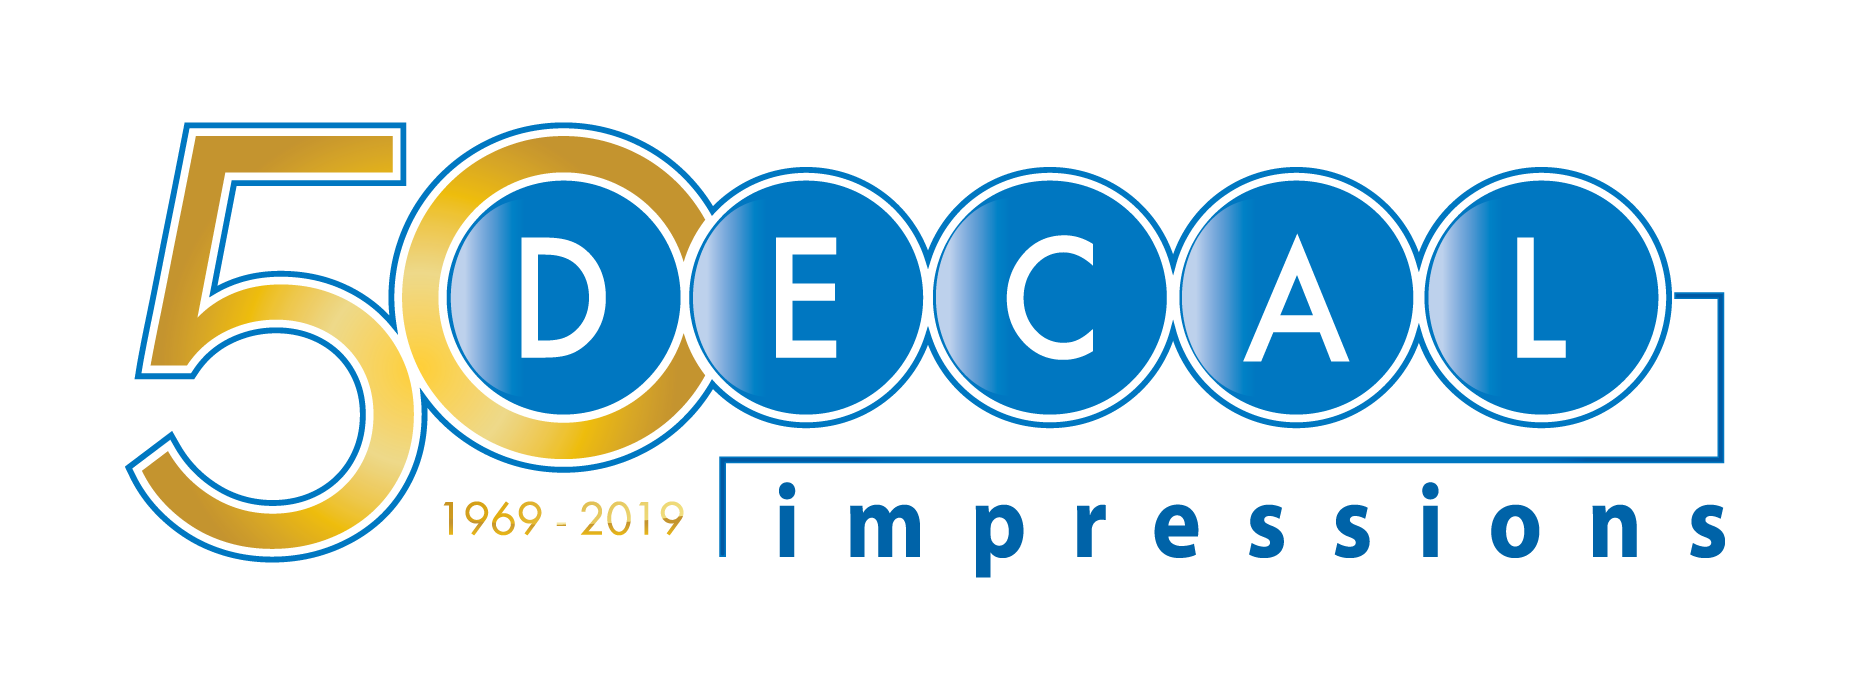 Decal Impressions Announces 50th Anniversary